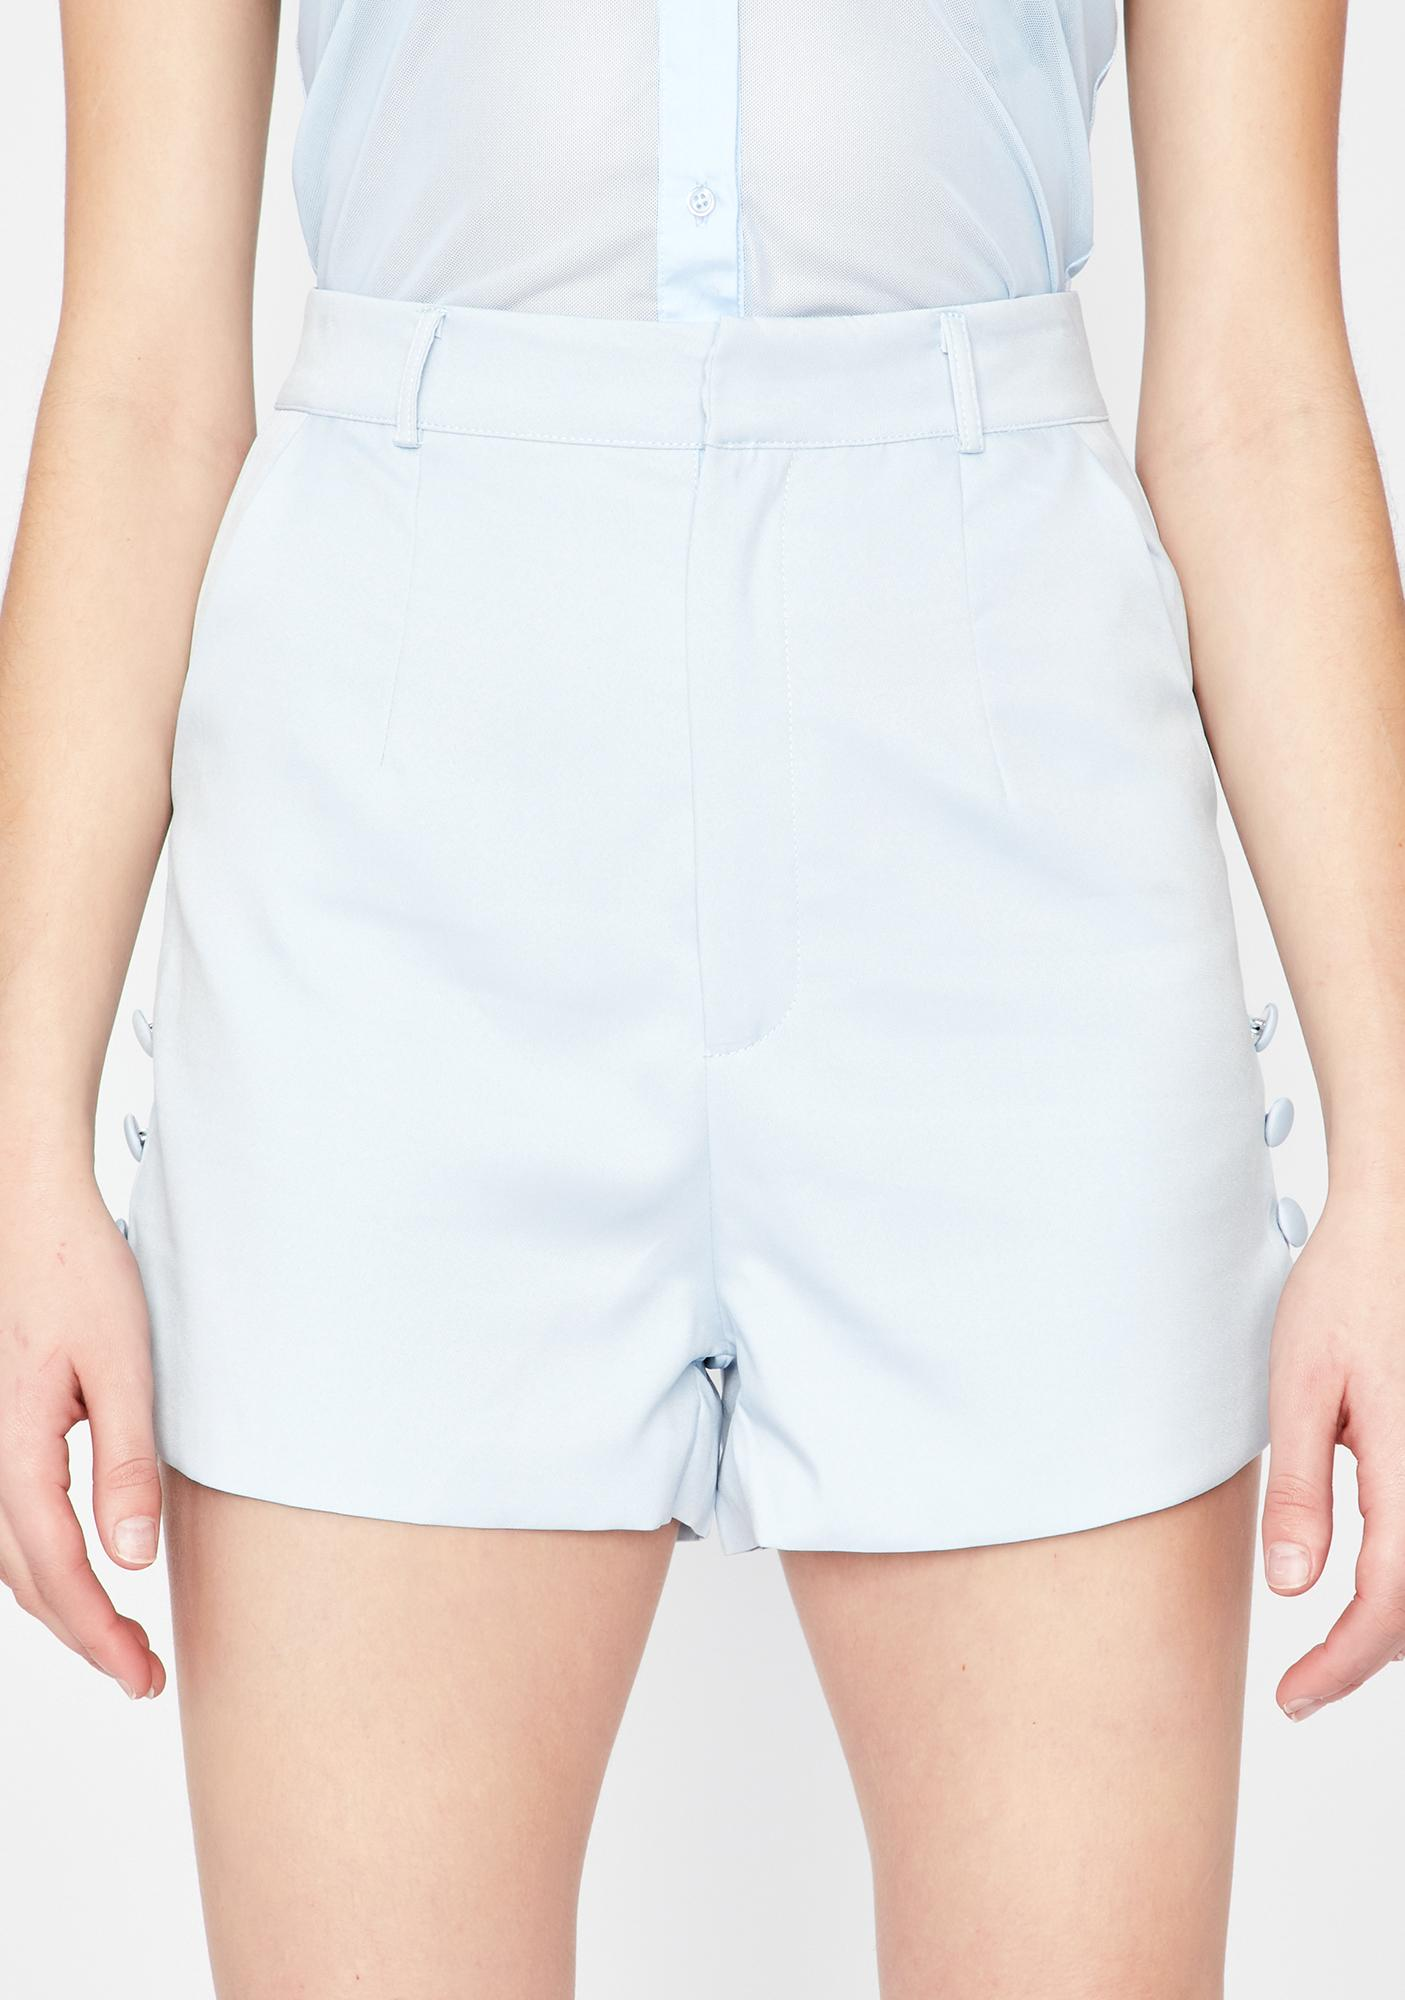 Not A Contest High Waist Shorts